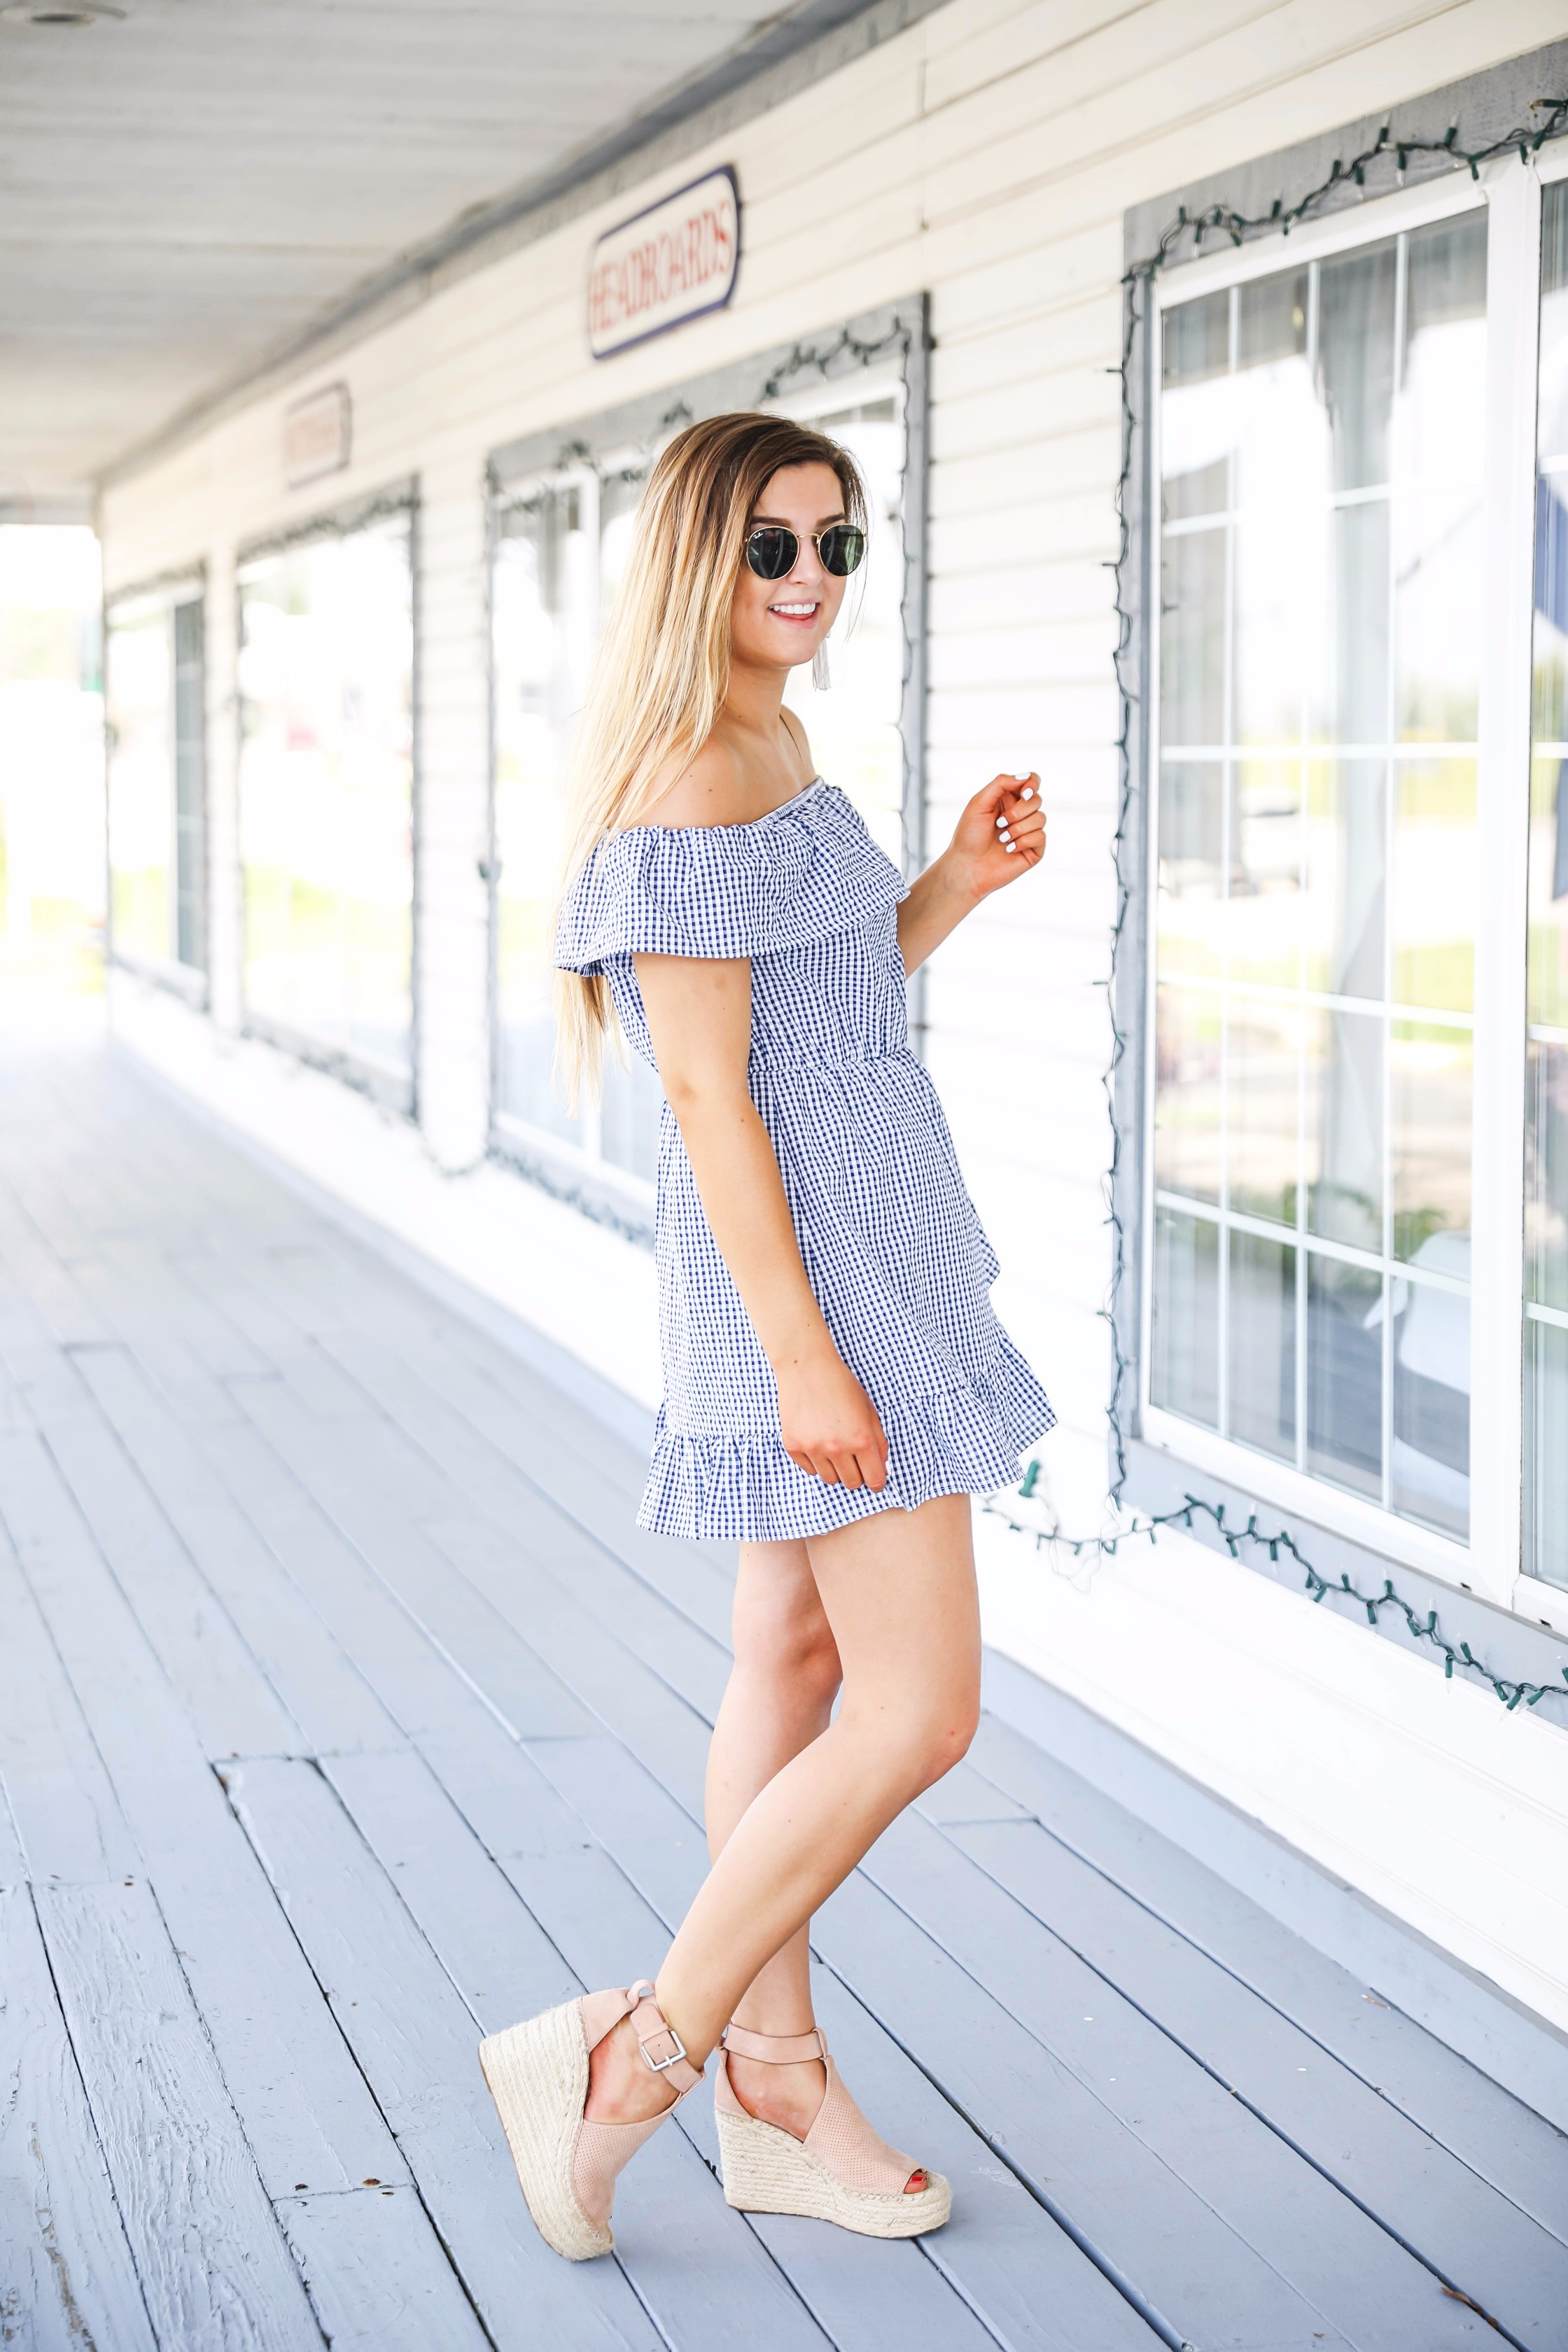 Gingham ruffle dress and round rayb ban sunglasses with tassel earrings on fashion blog daily dose of charm by lauren lindmark